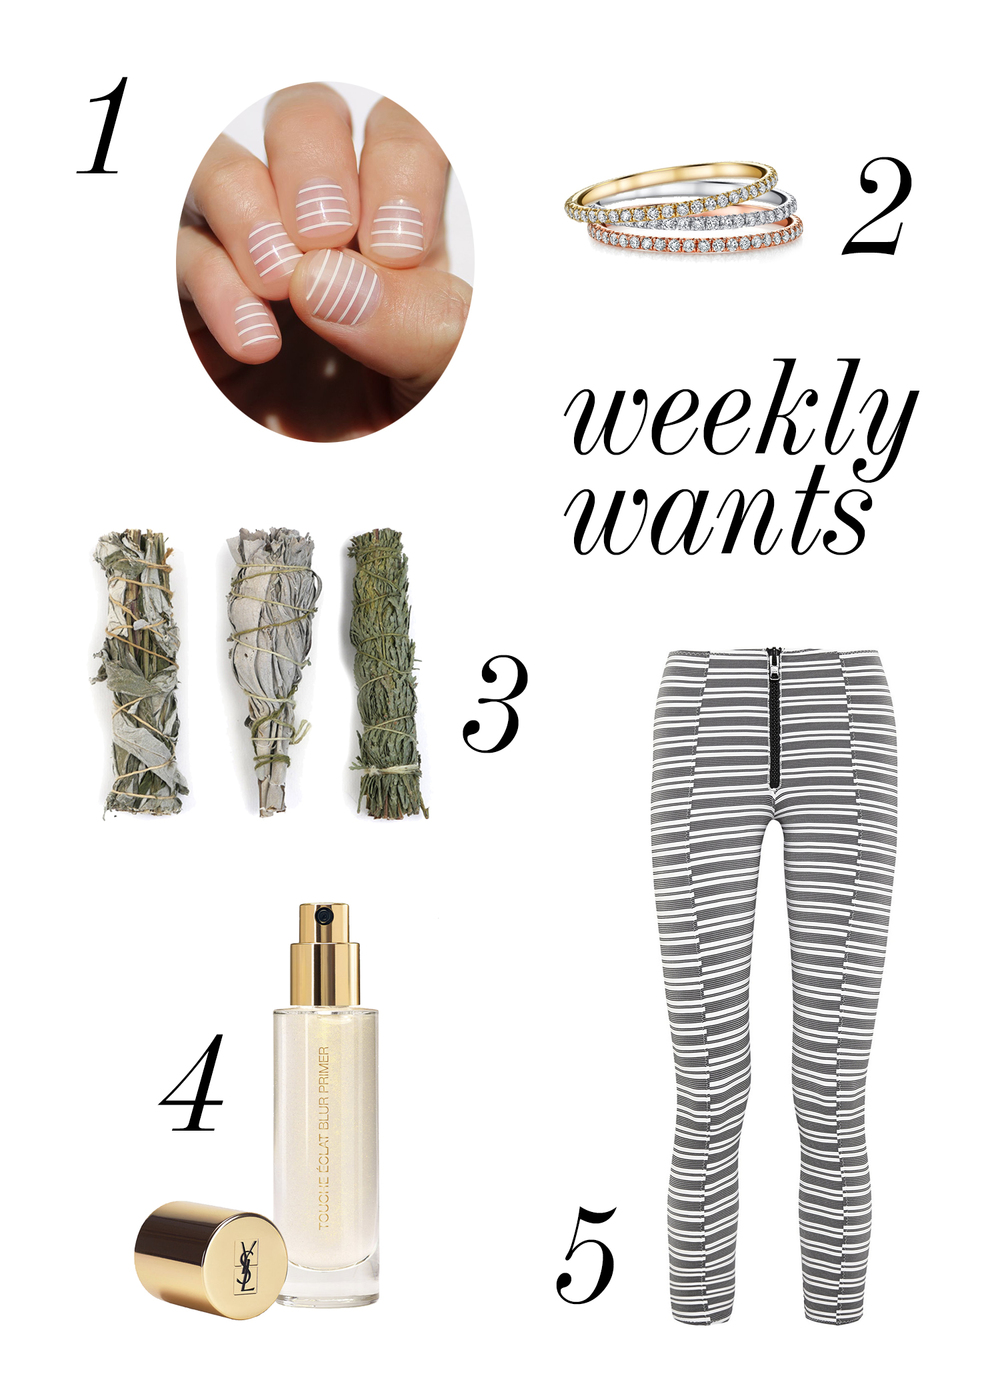 WEEKLY WANTS 8-28-15